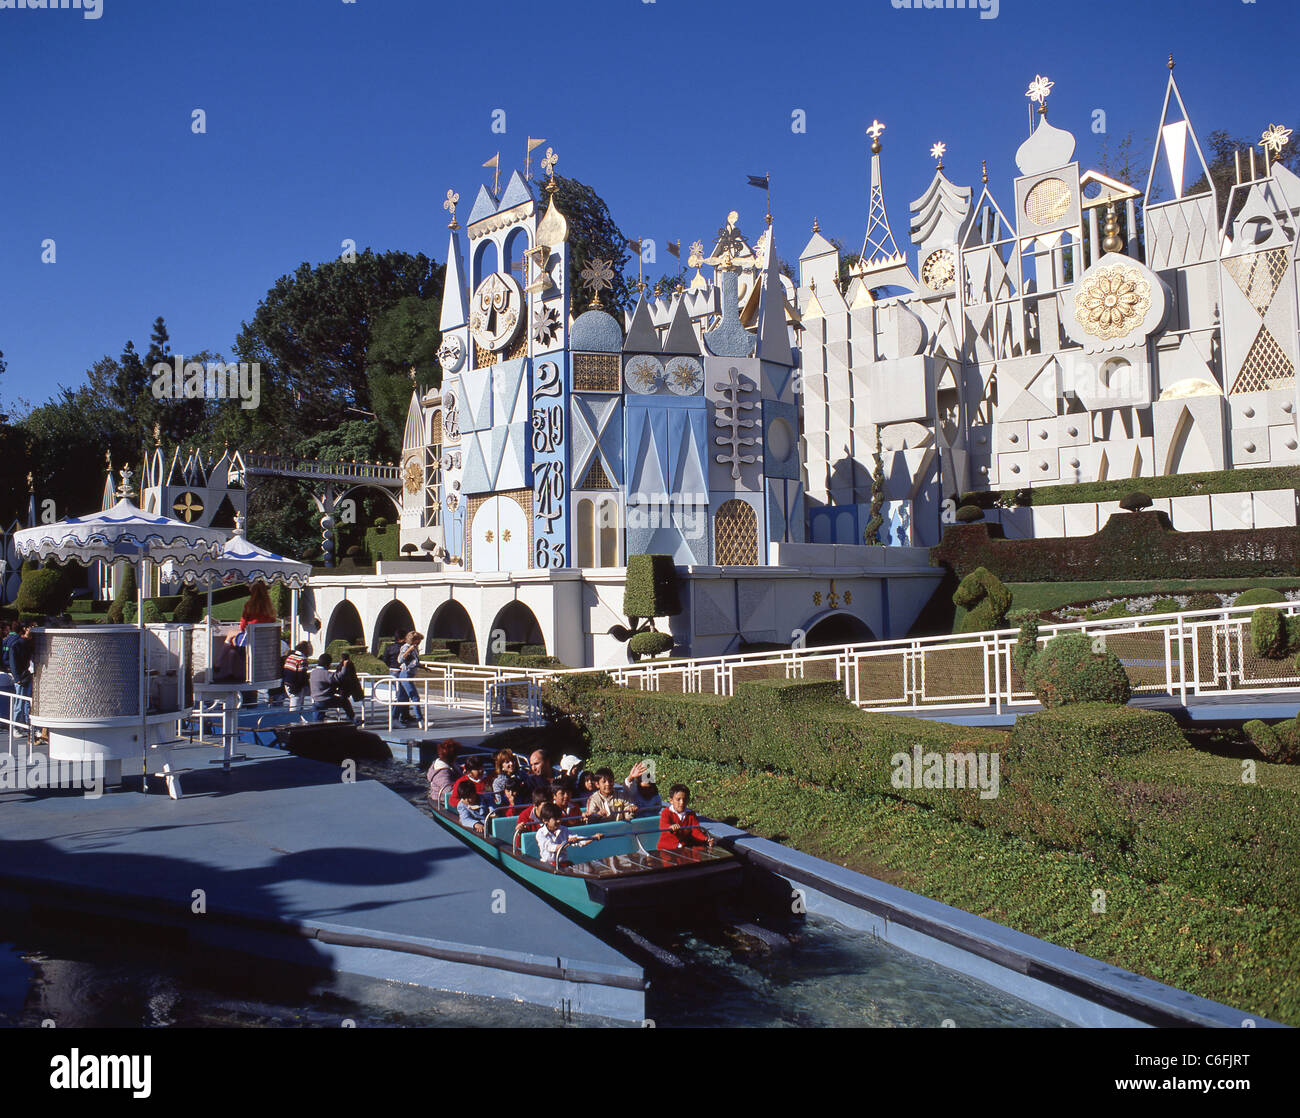 'It's a Small World' attraction, Disneyland, Anaheim, California, United States of America - Stock Image